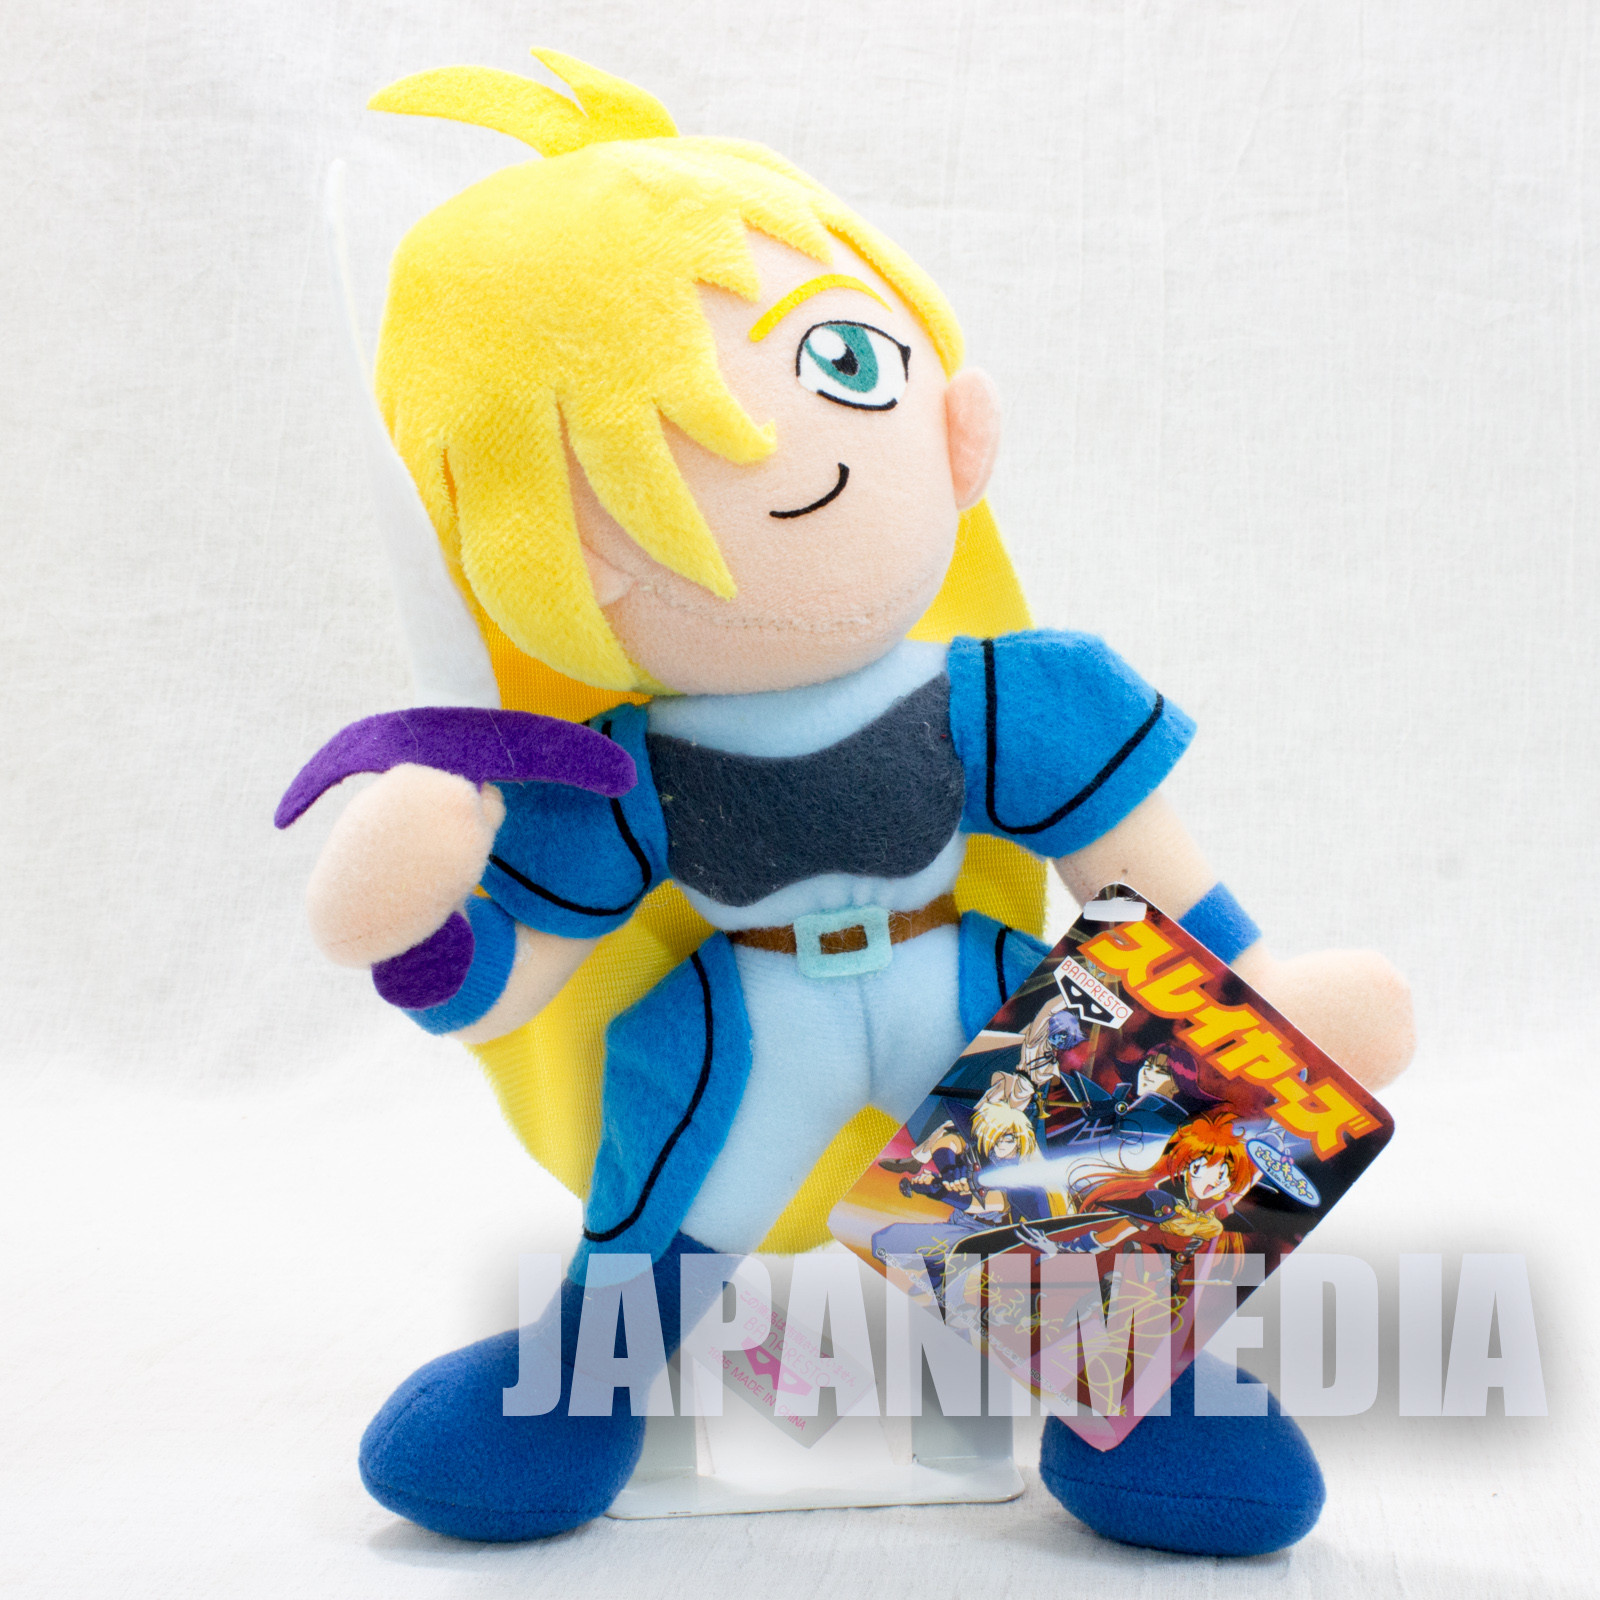 RARE! Slayers Gourry Gabriev Plush Doll Figure Banpresto JAPAN ANIME MANGA